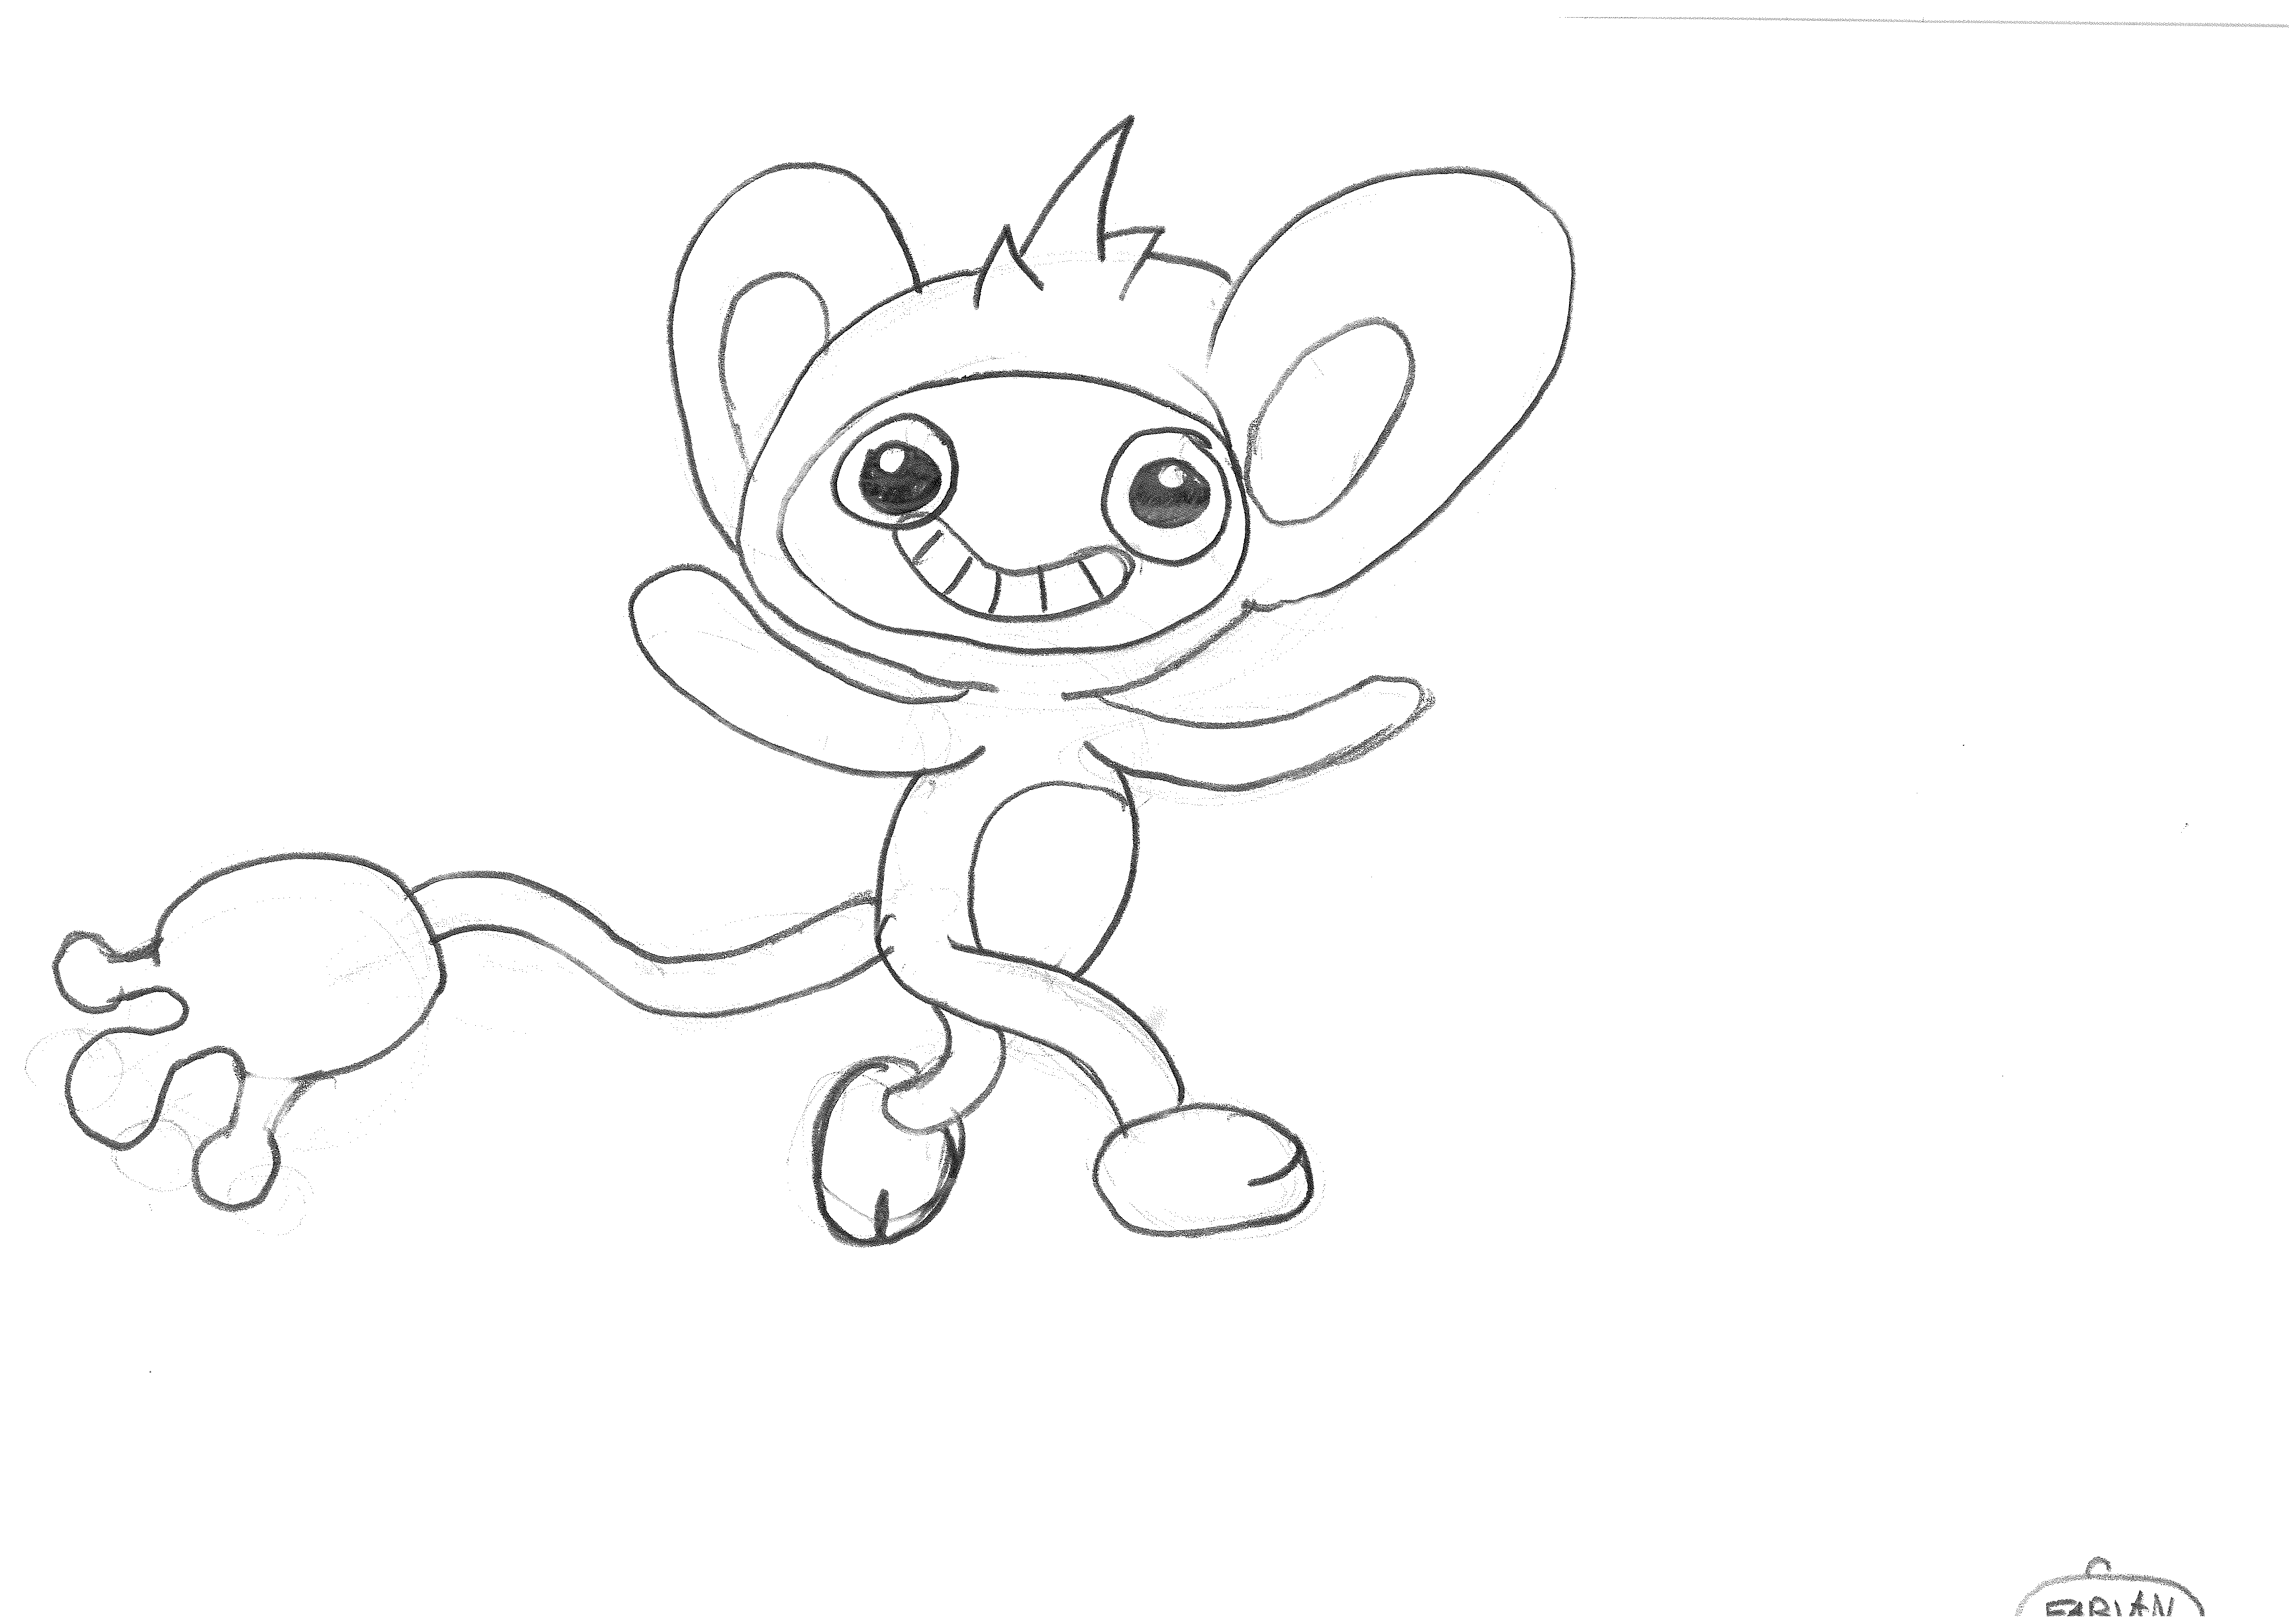 Ambipom coloring page | Free Printable Coloring Pages | 3312x4677